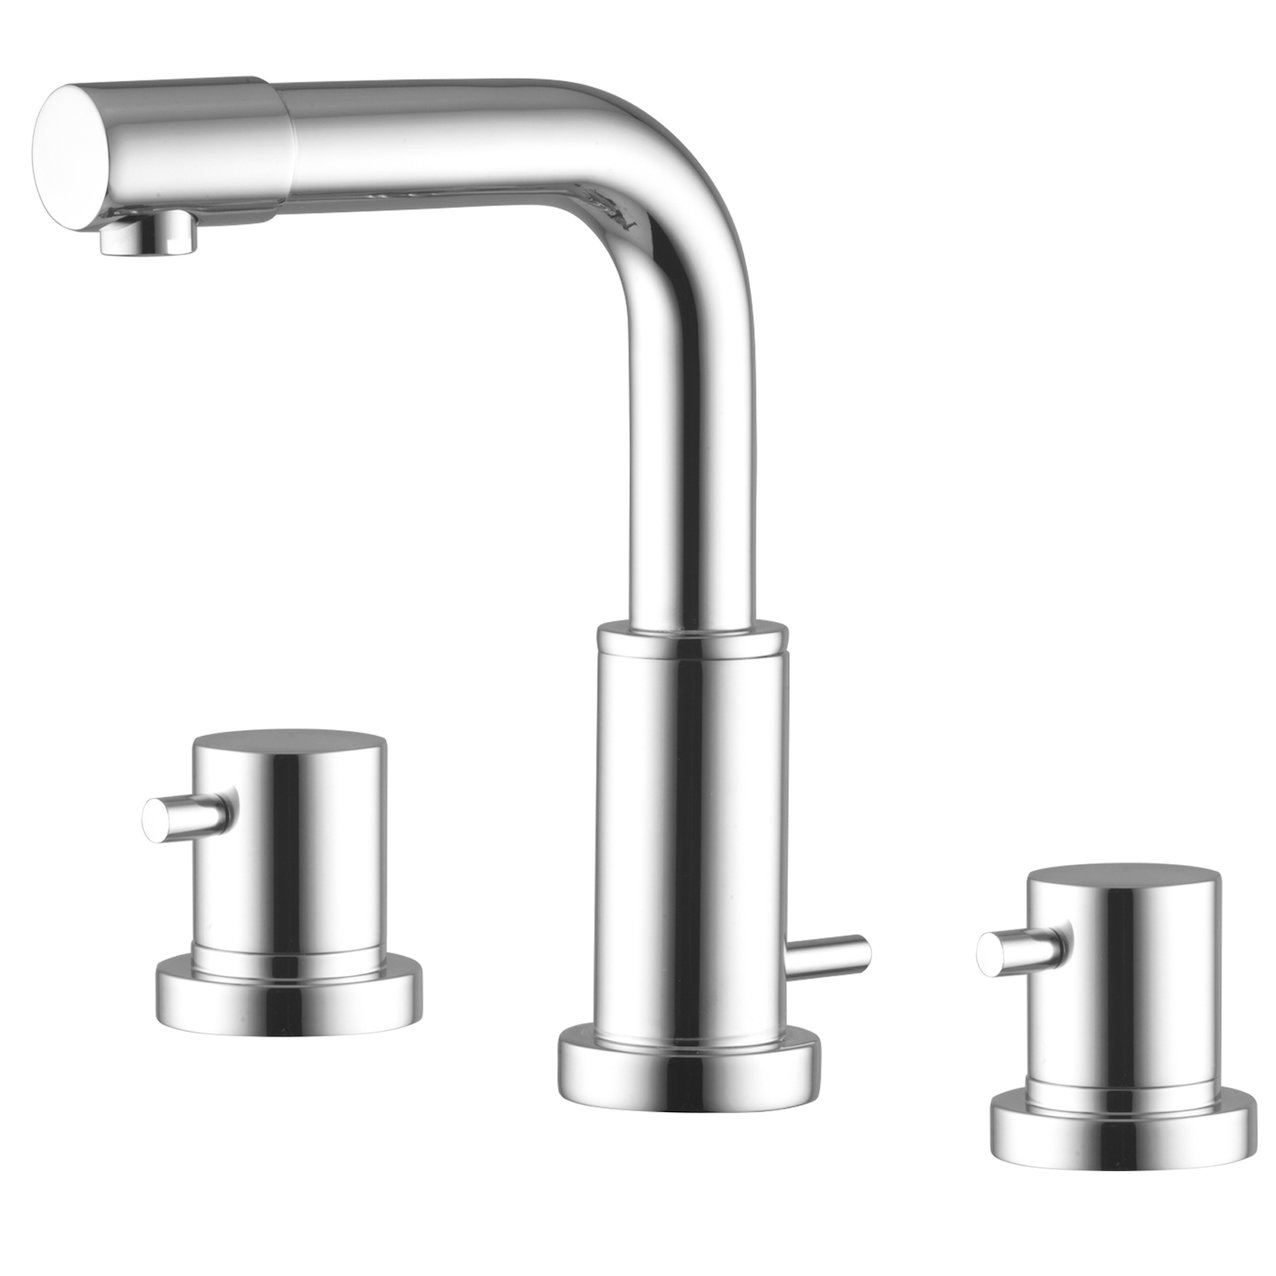 3 hole basin tap Voyager